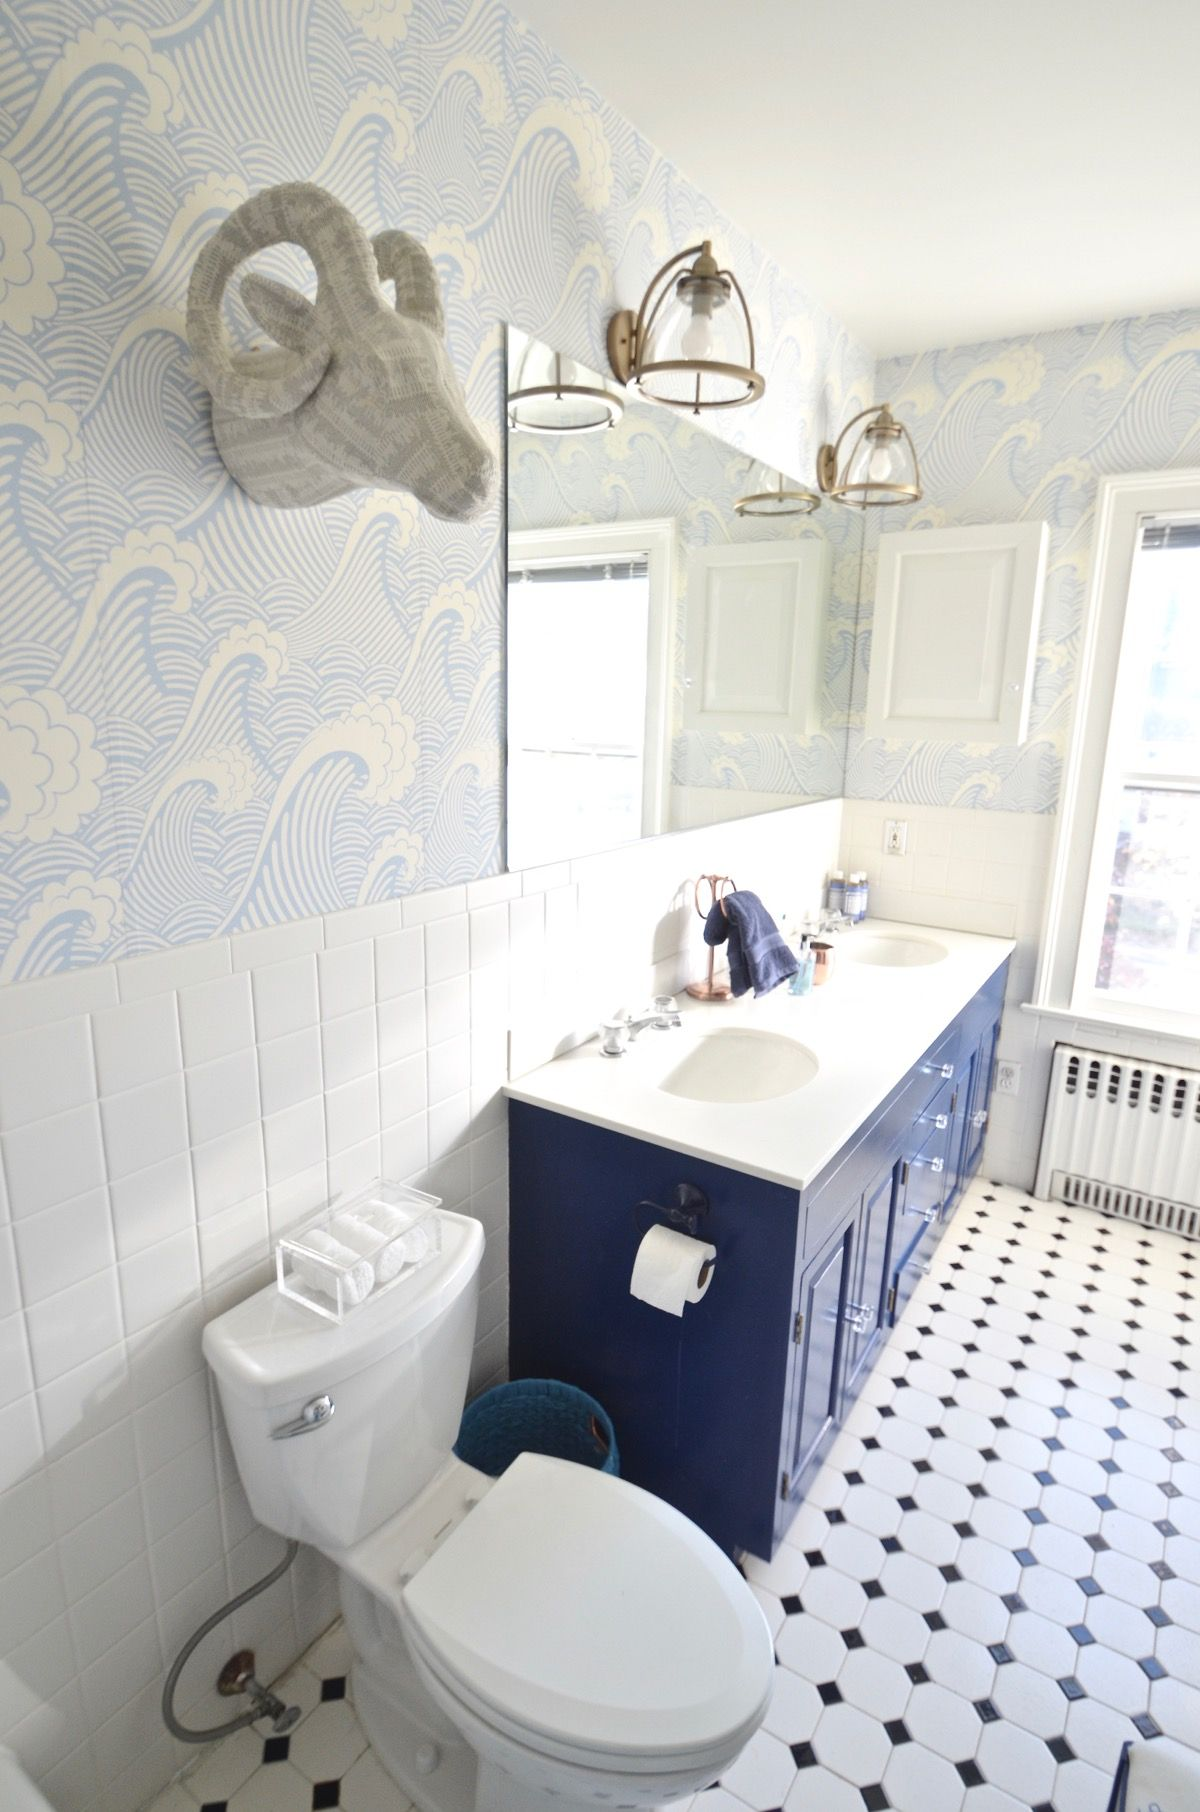 How To: Removable Wallpaper | Pinterest | Kid bathrooms, Pendant ...